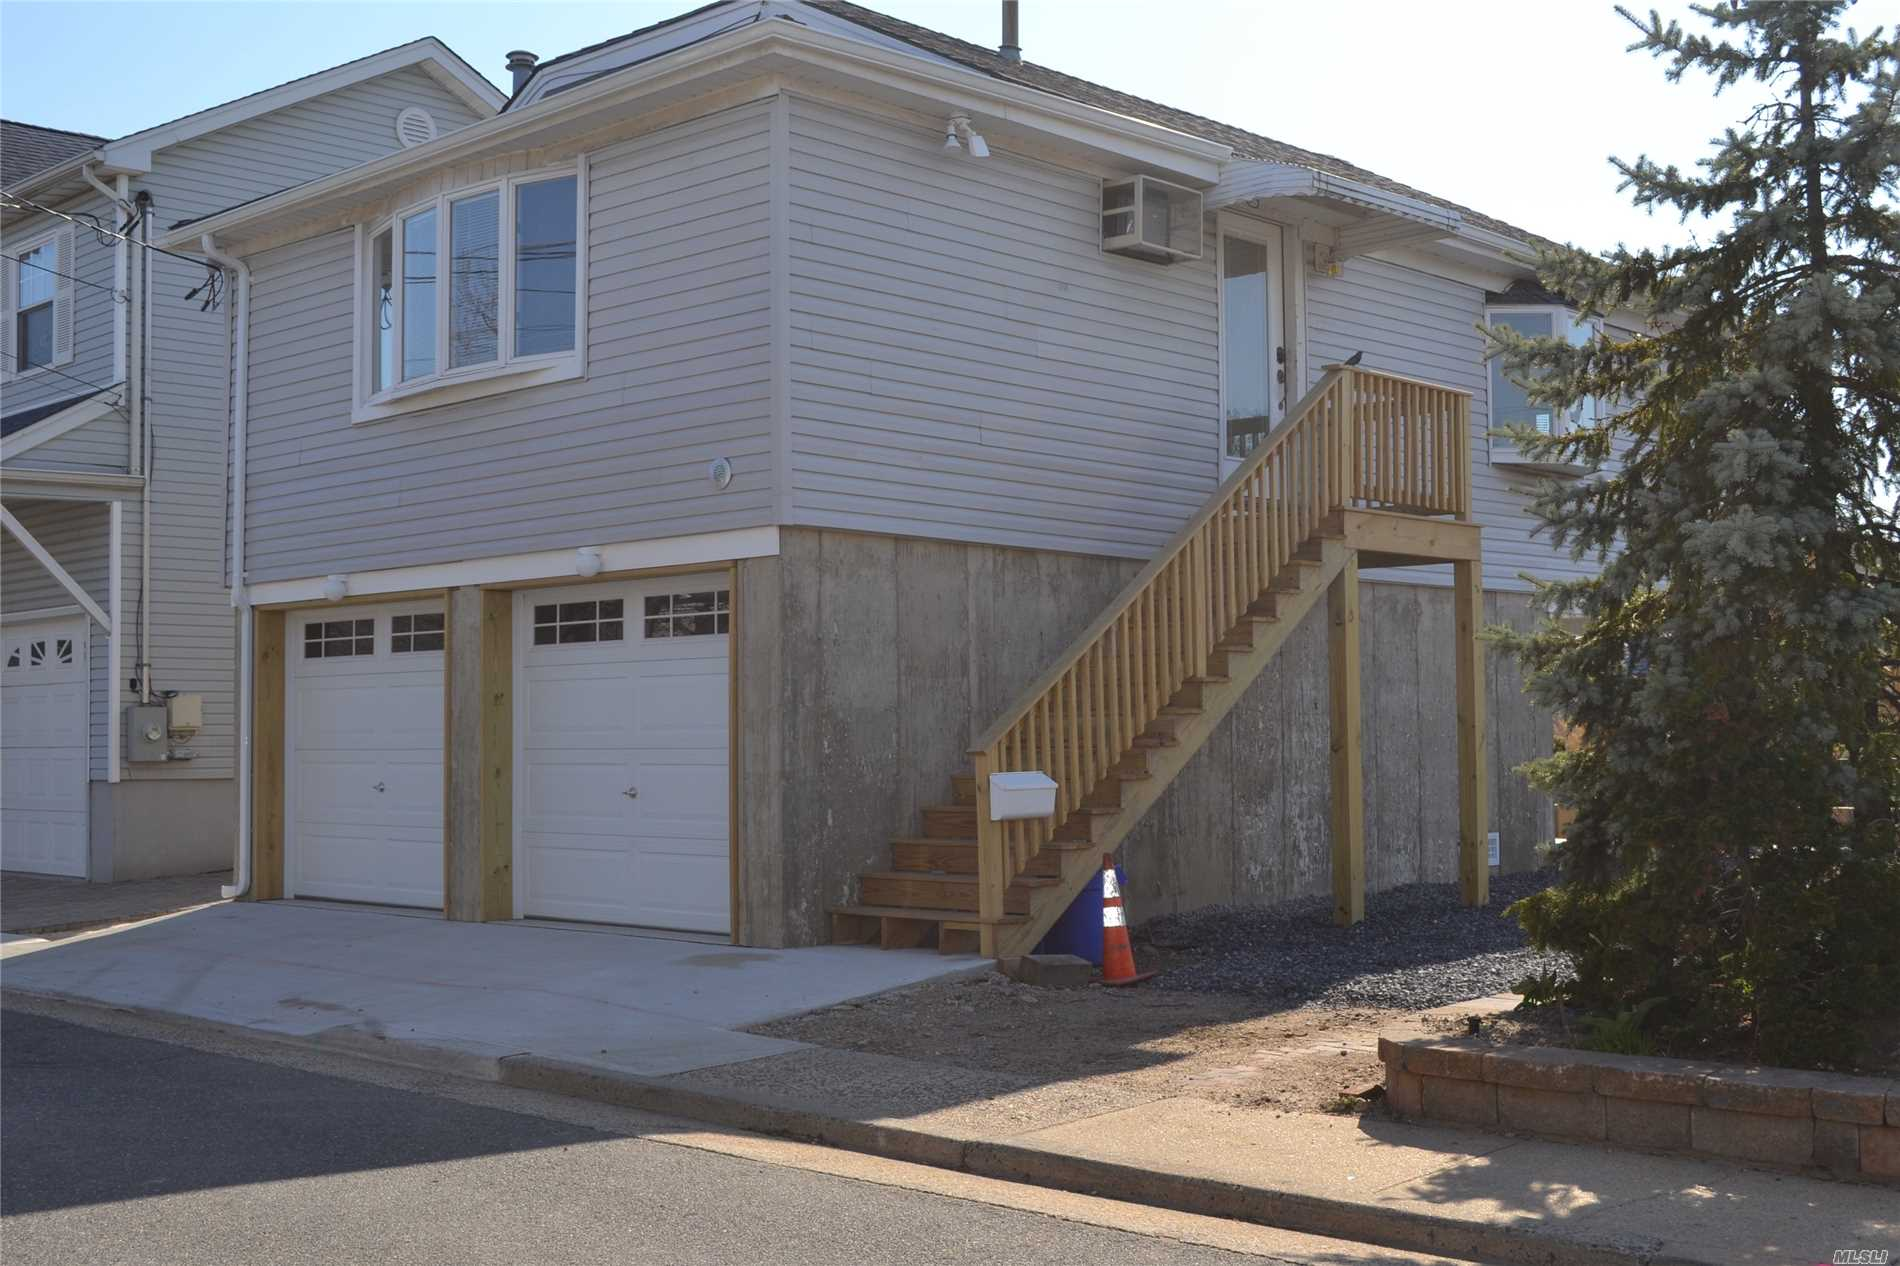 Waterfront Raised home with One car garage included. 2 B/R, 1 and 1/2 Bathroom, L/R, D/R, Washer and Dryer